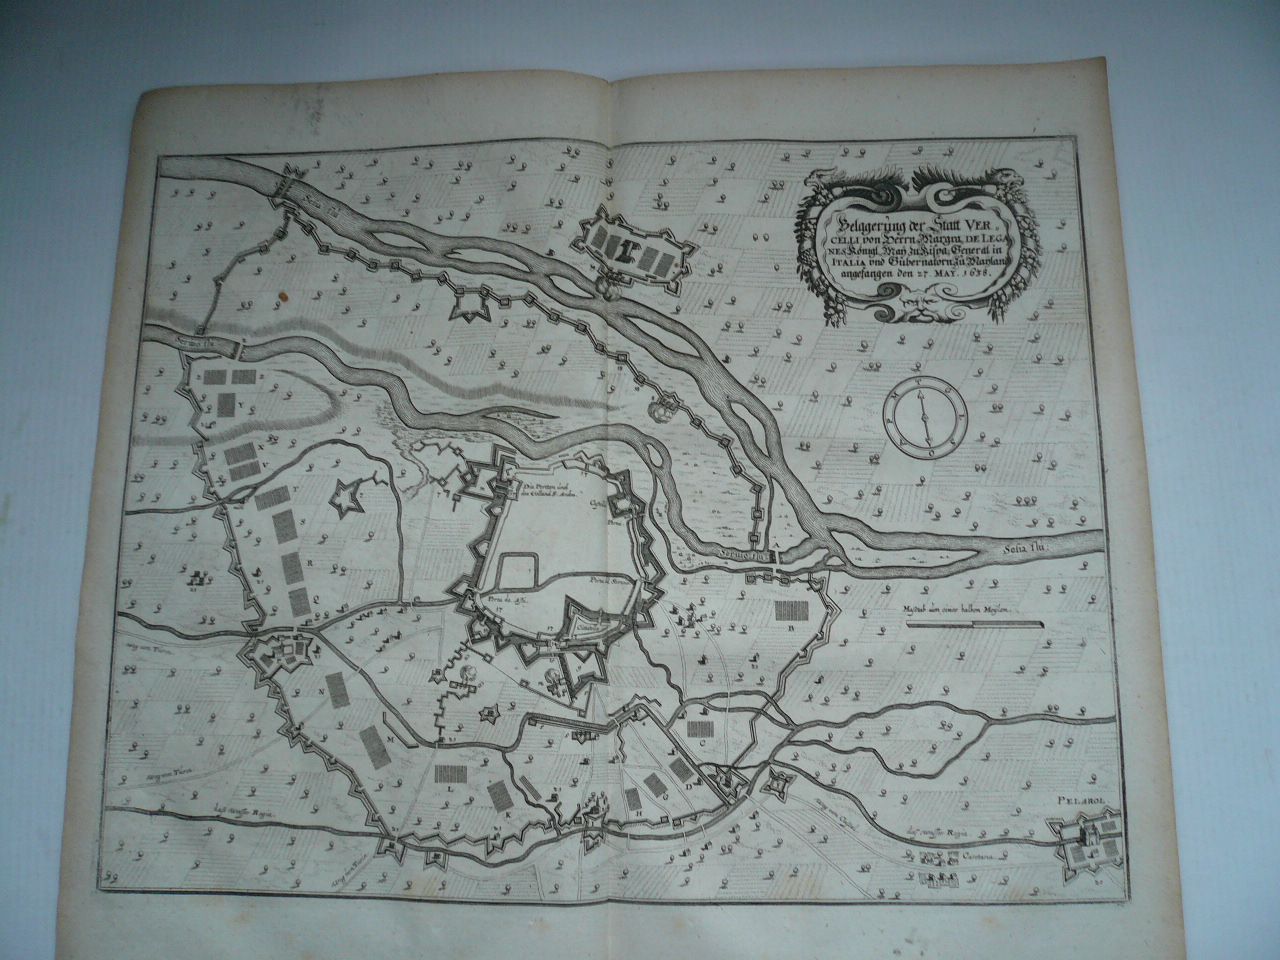 Vercelli, siege of 1638, copperengraving, Merian Matthaeus